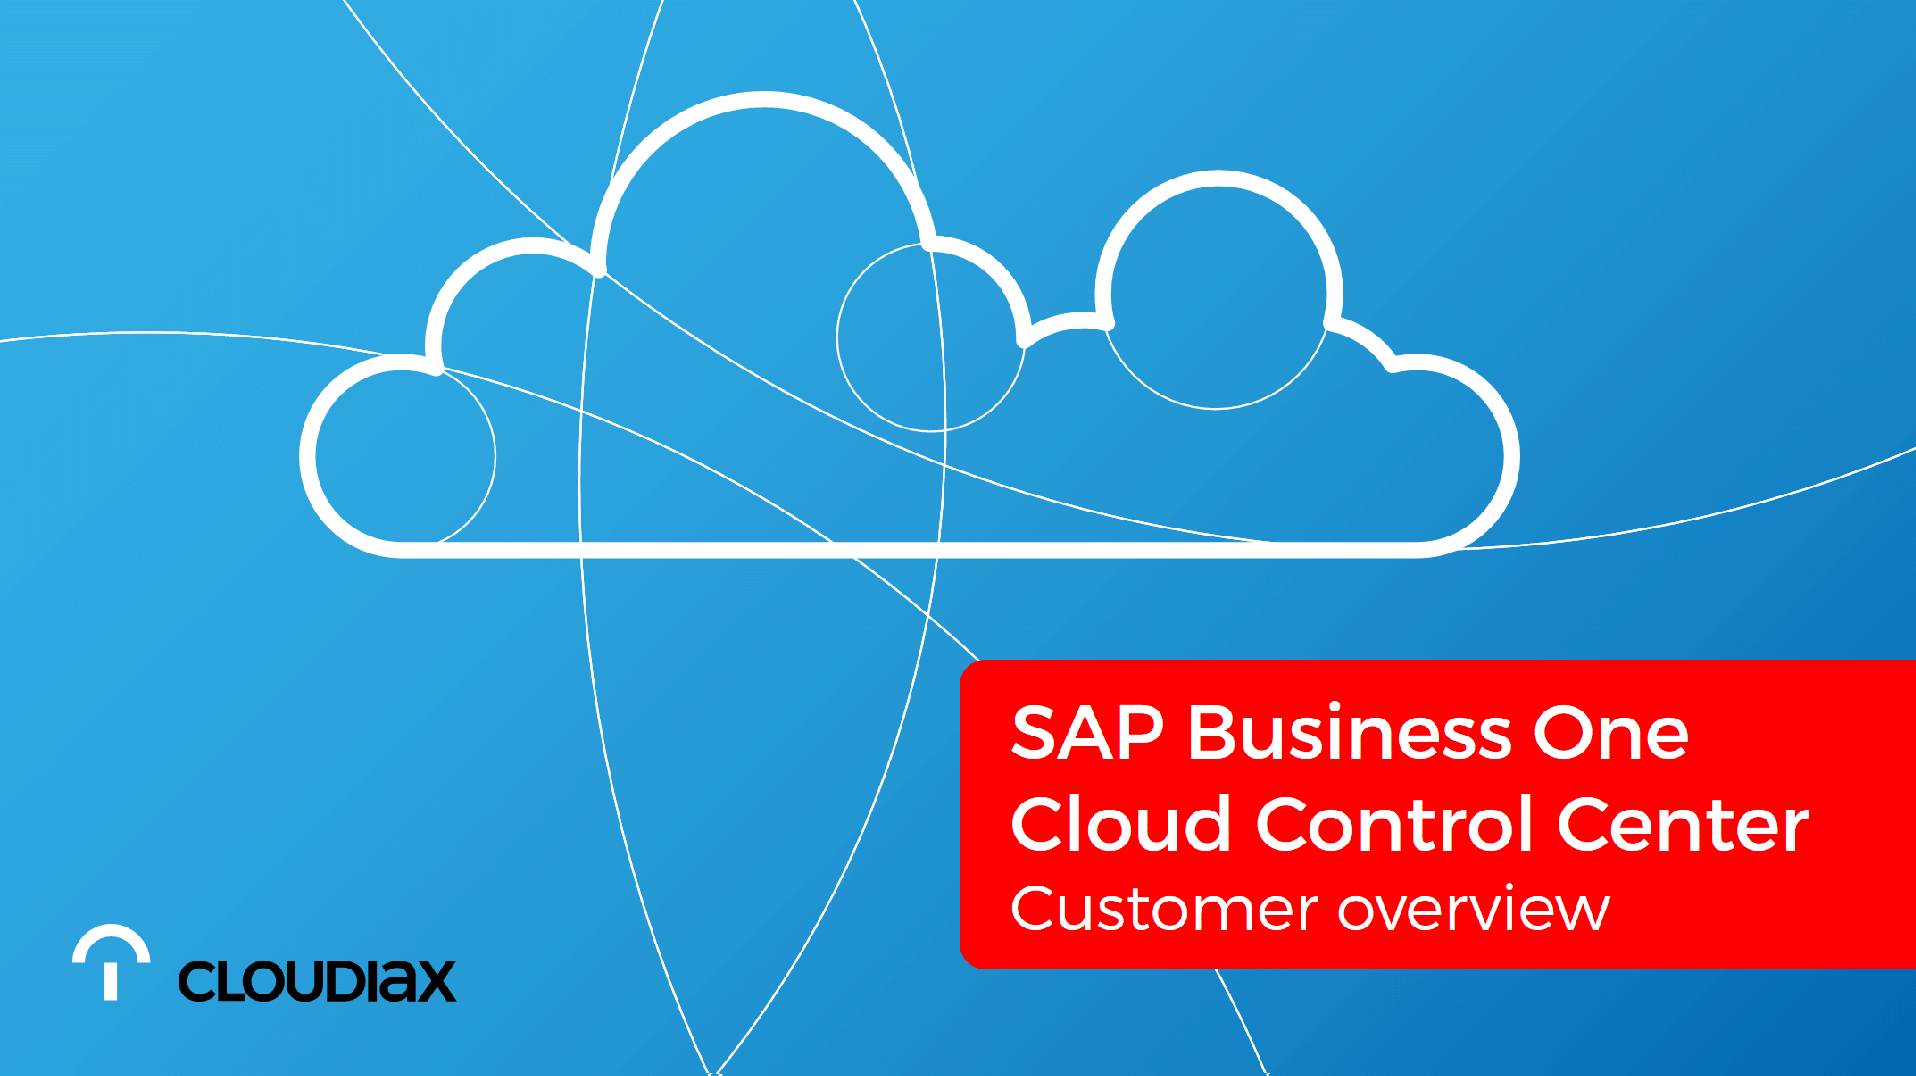 SAP Business One Cloud Control Center - Customer overview